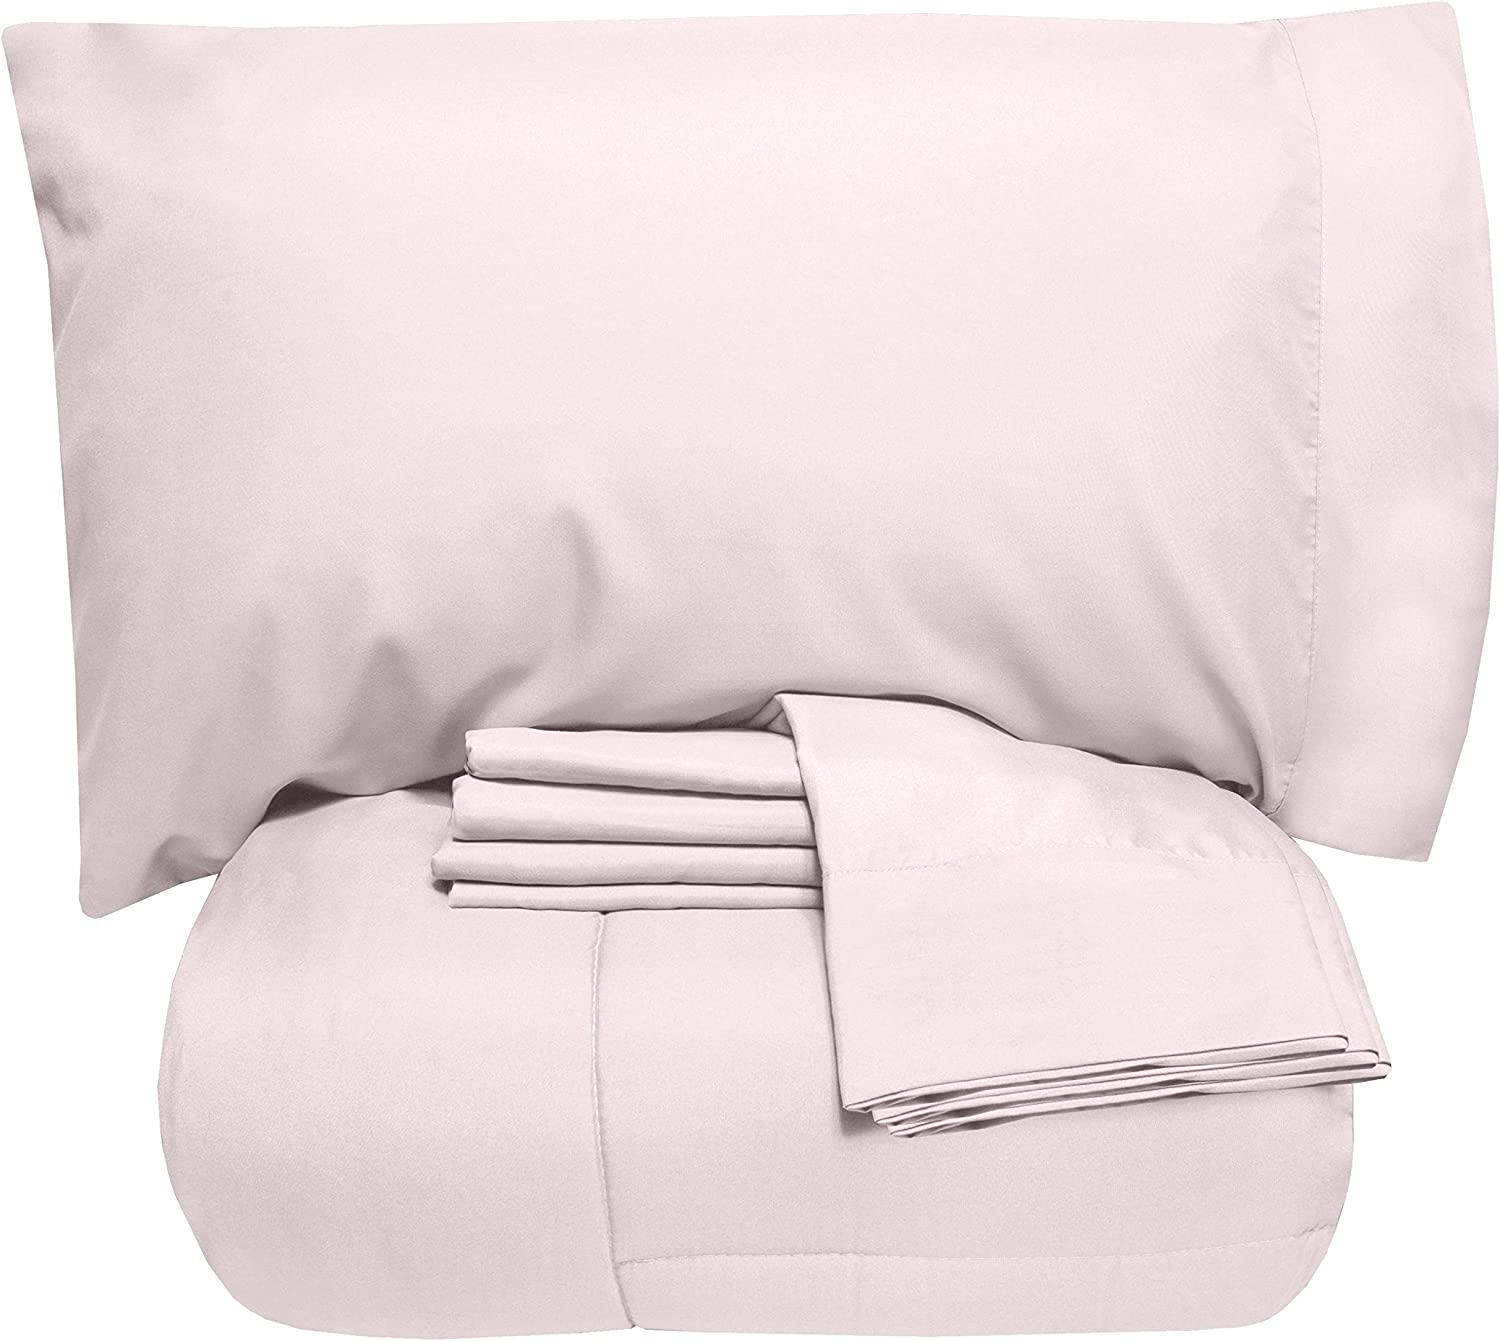 Sweet Home Collection 7 Piece Comforter Set Bag Solid Color All Season Soft Down Alternative Blanket & Luxurious Microfiber Bed Sheets, Full, Pale Pink